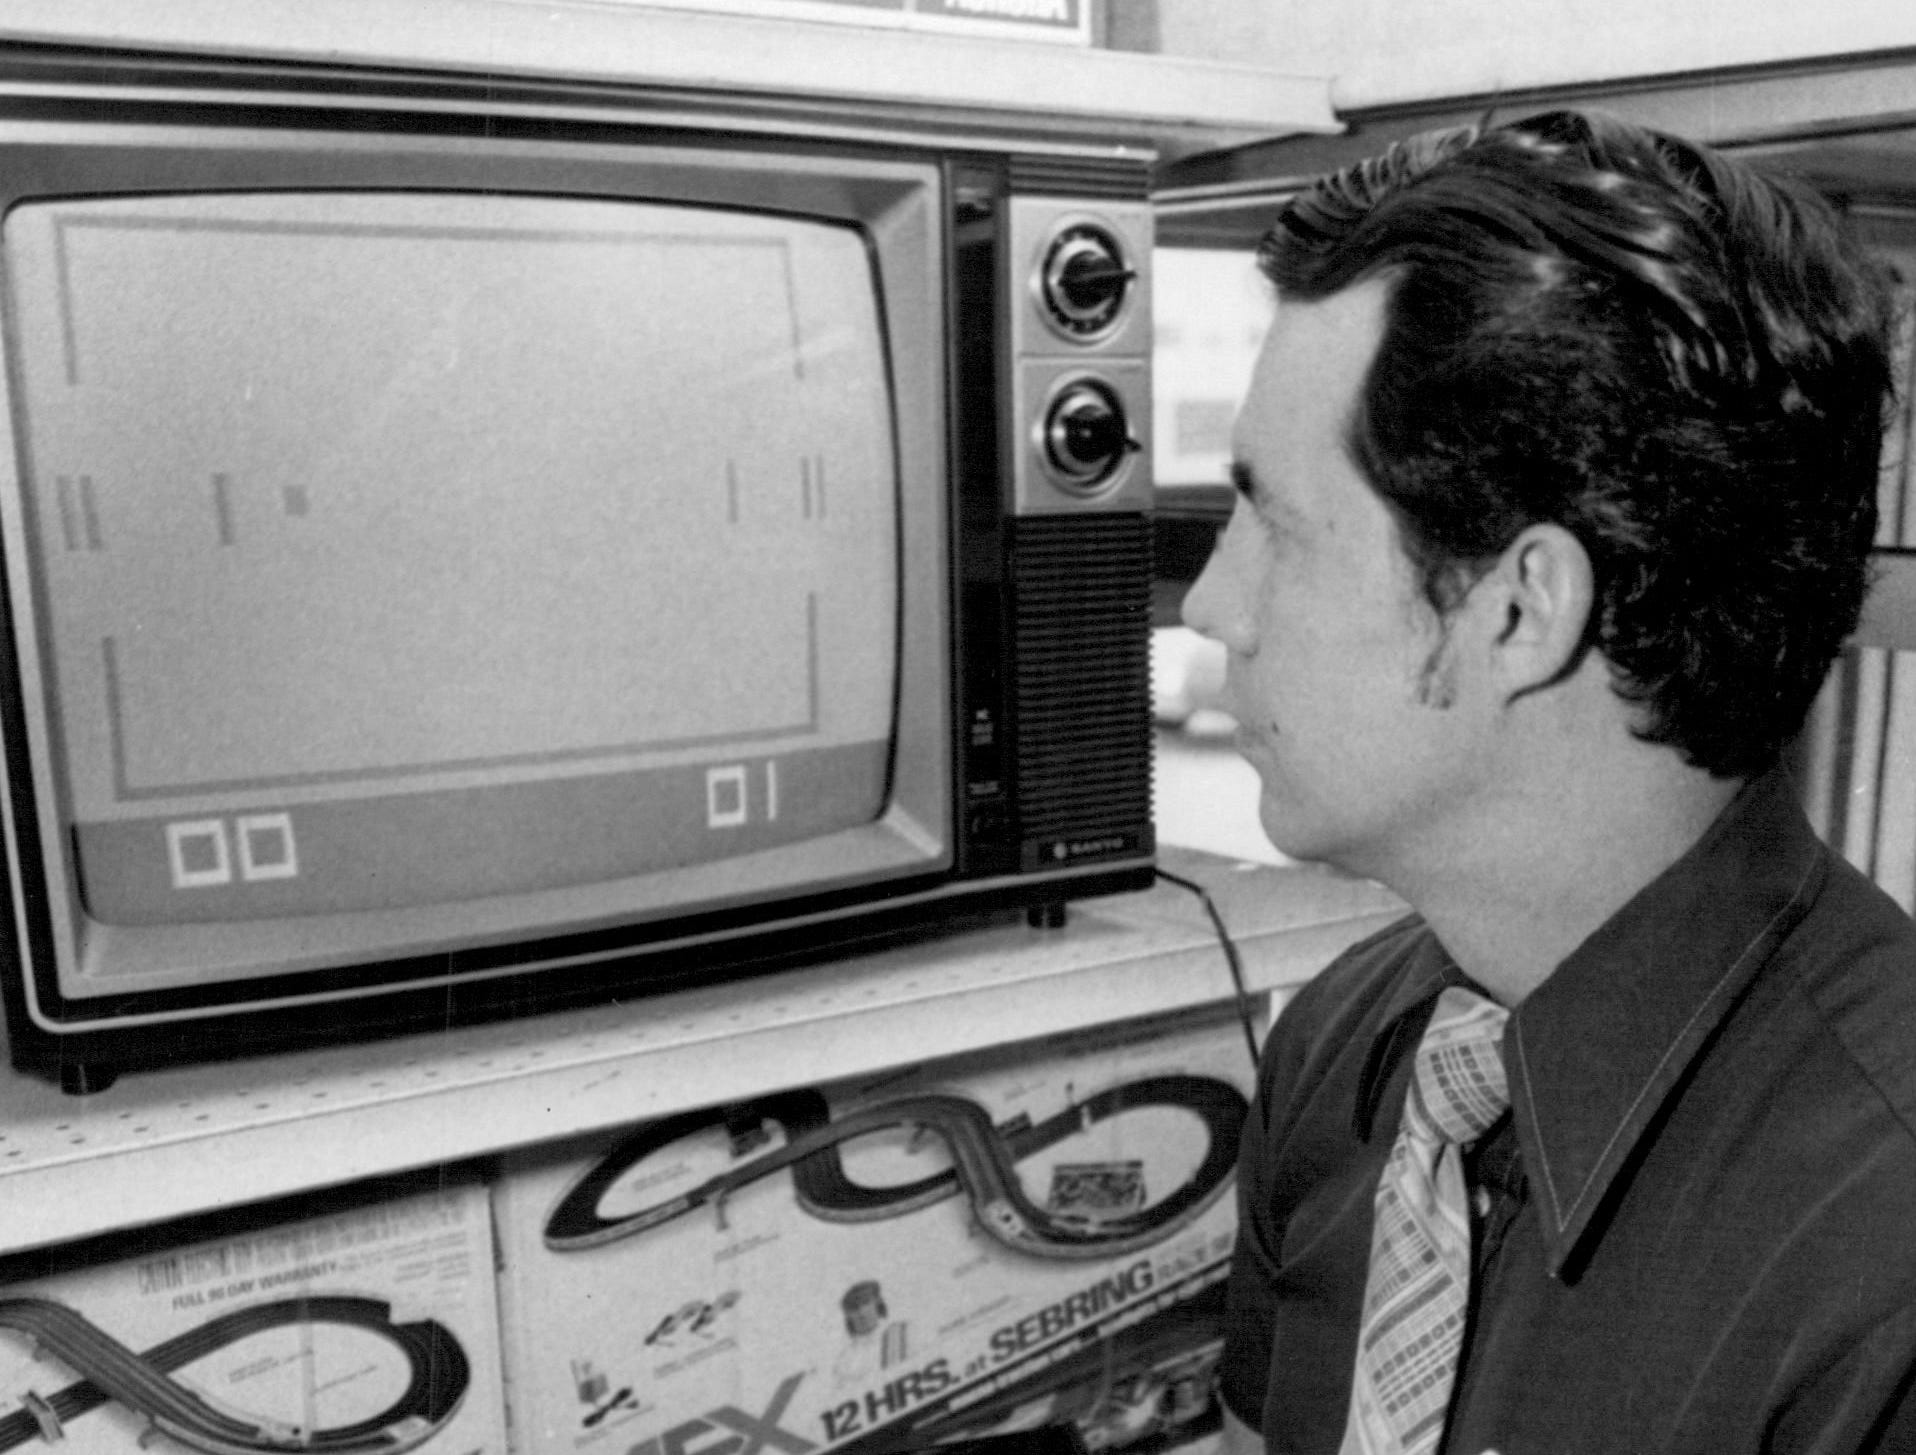 In this photo from 1977, Charlie Rabidoux demonstrates a video game at Marjax.